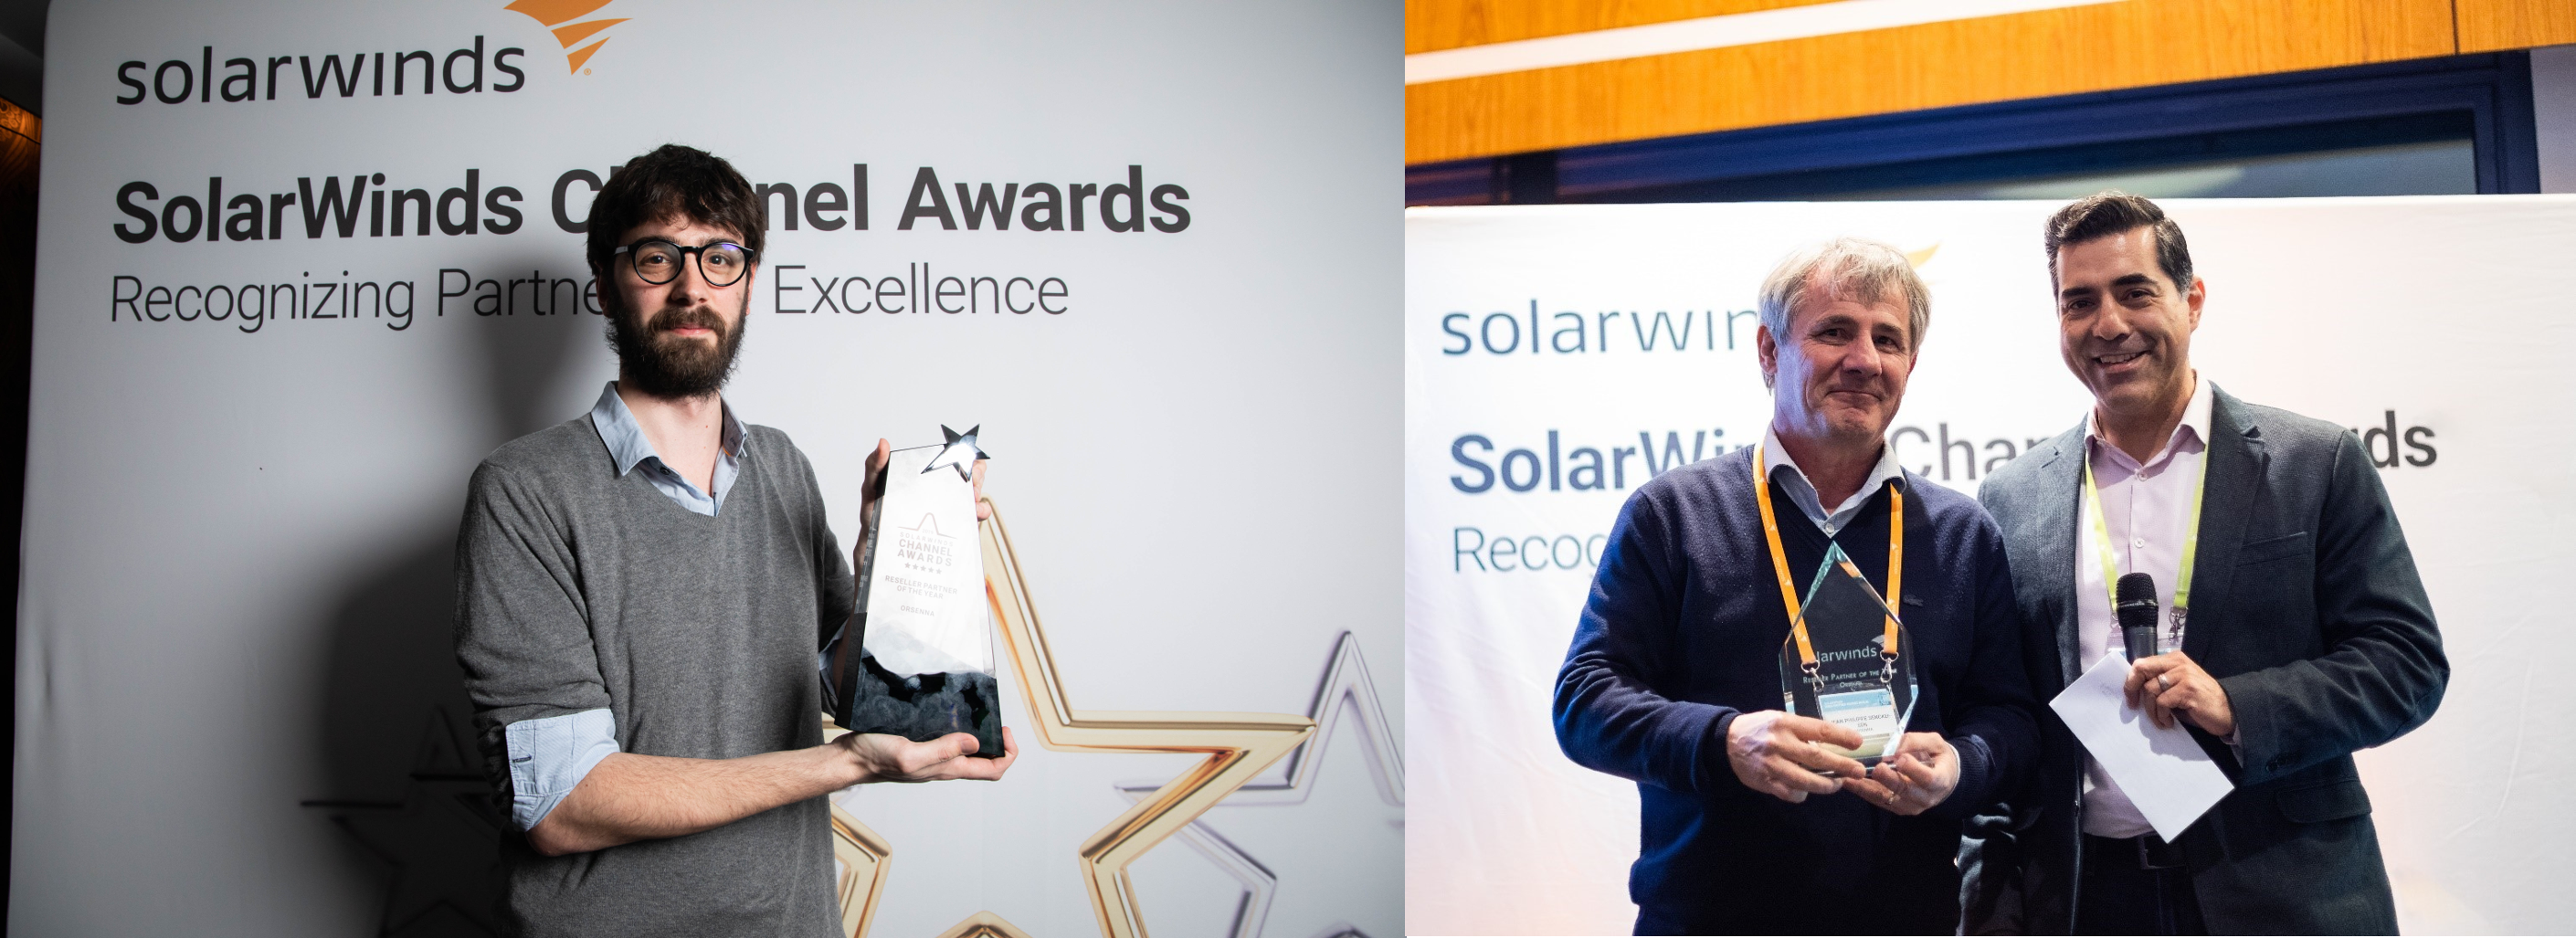 Channel EMEA Awards SolarWinds